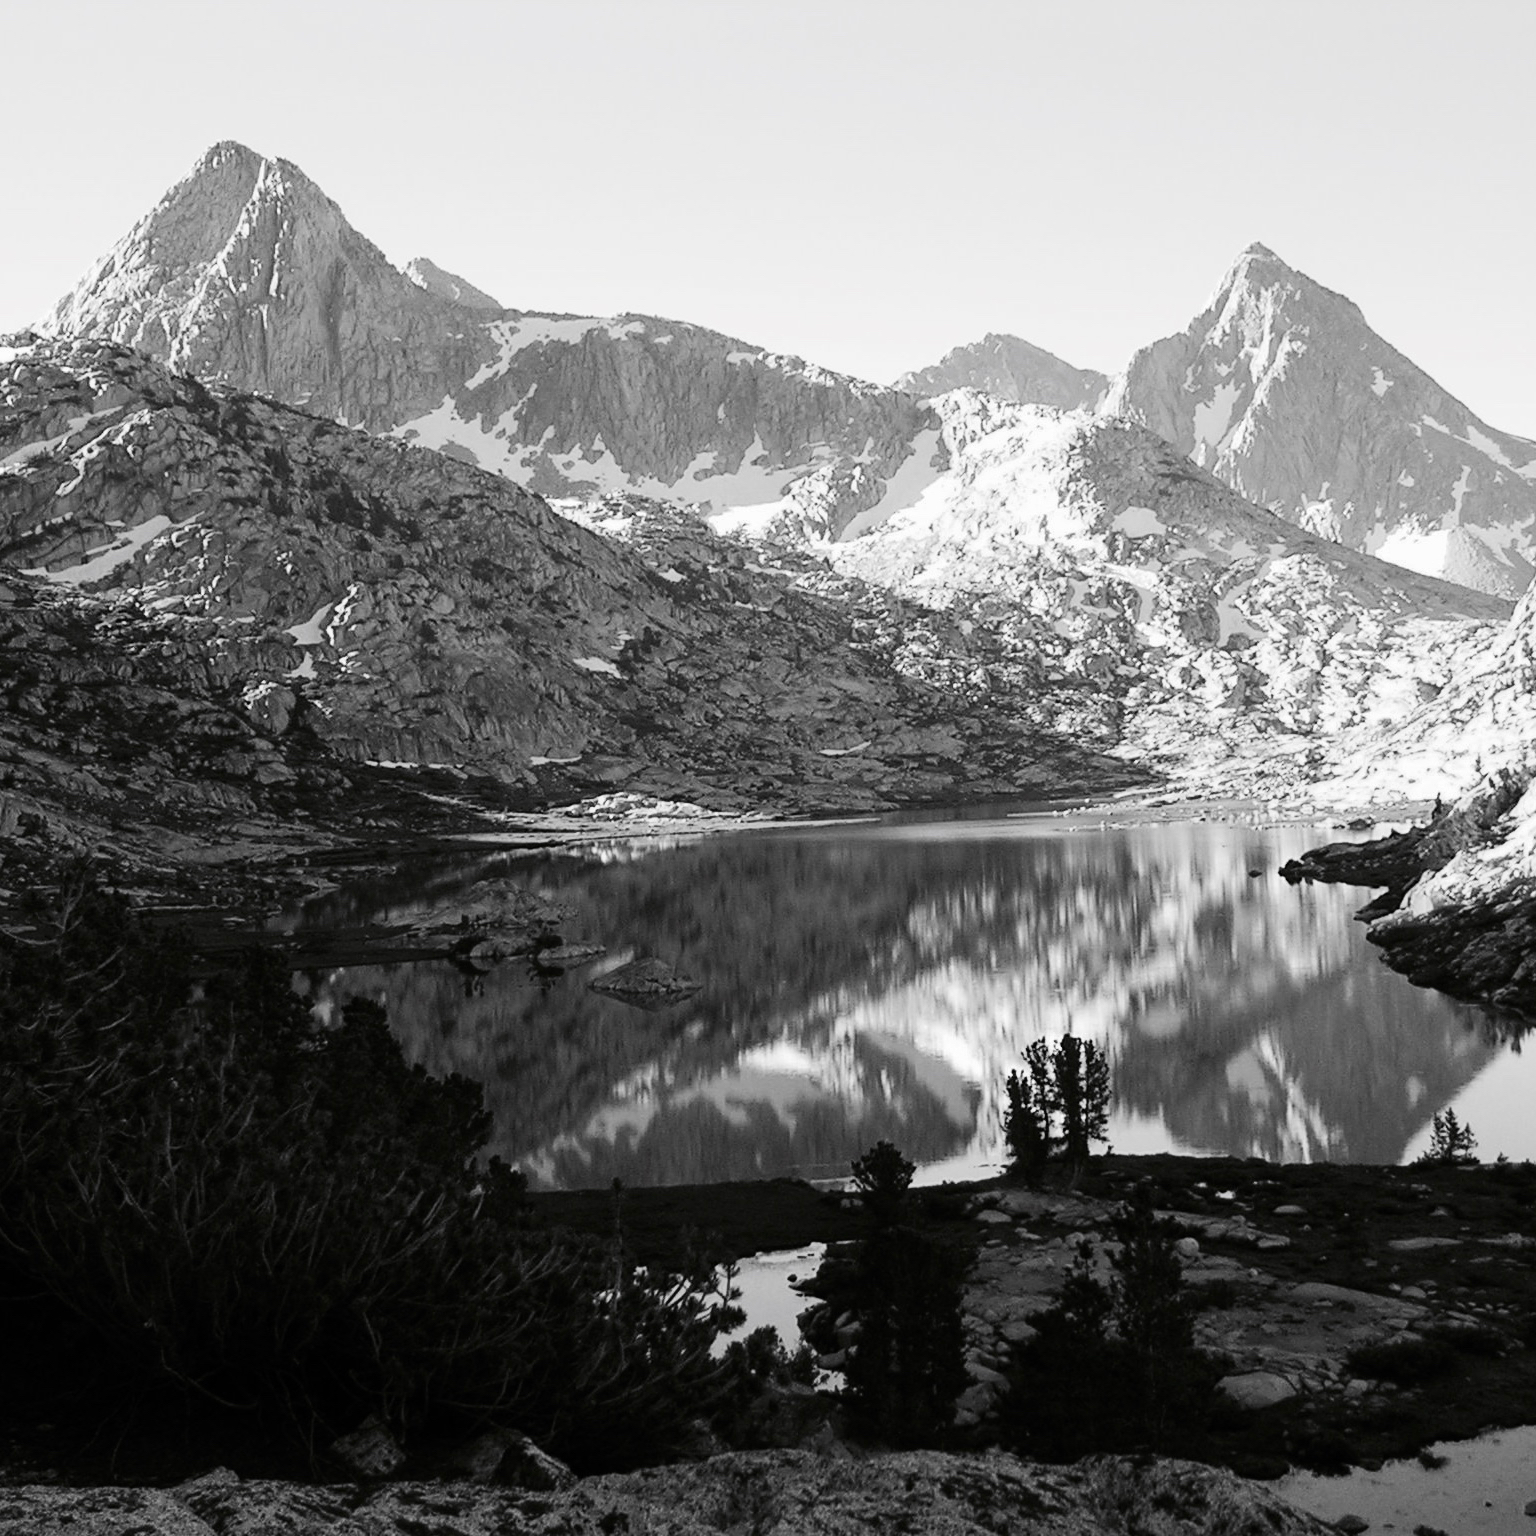 Looking south, across Evolution Lake towards Mt. Spencer and the Goddard Divide , just after sunrise .Sierra Nevada range, California.